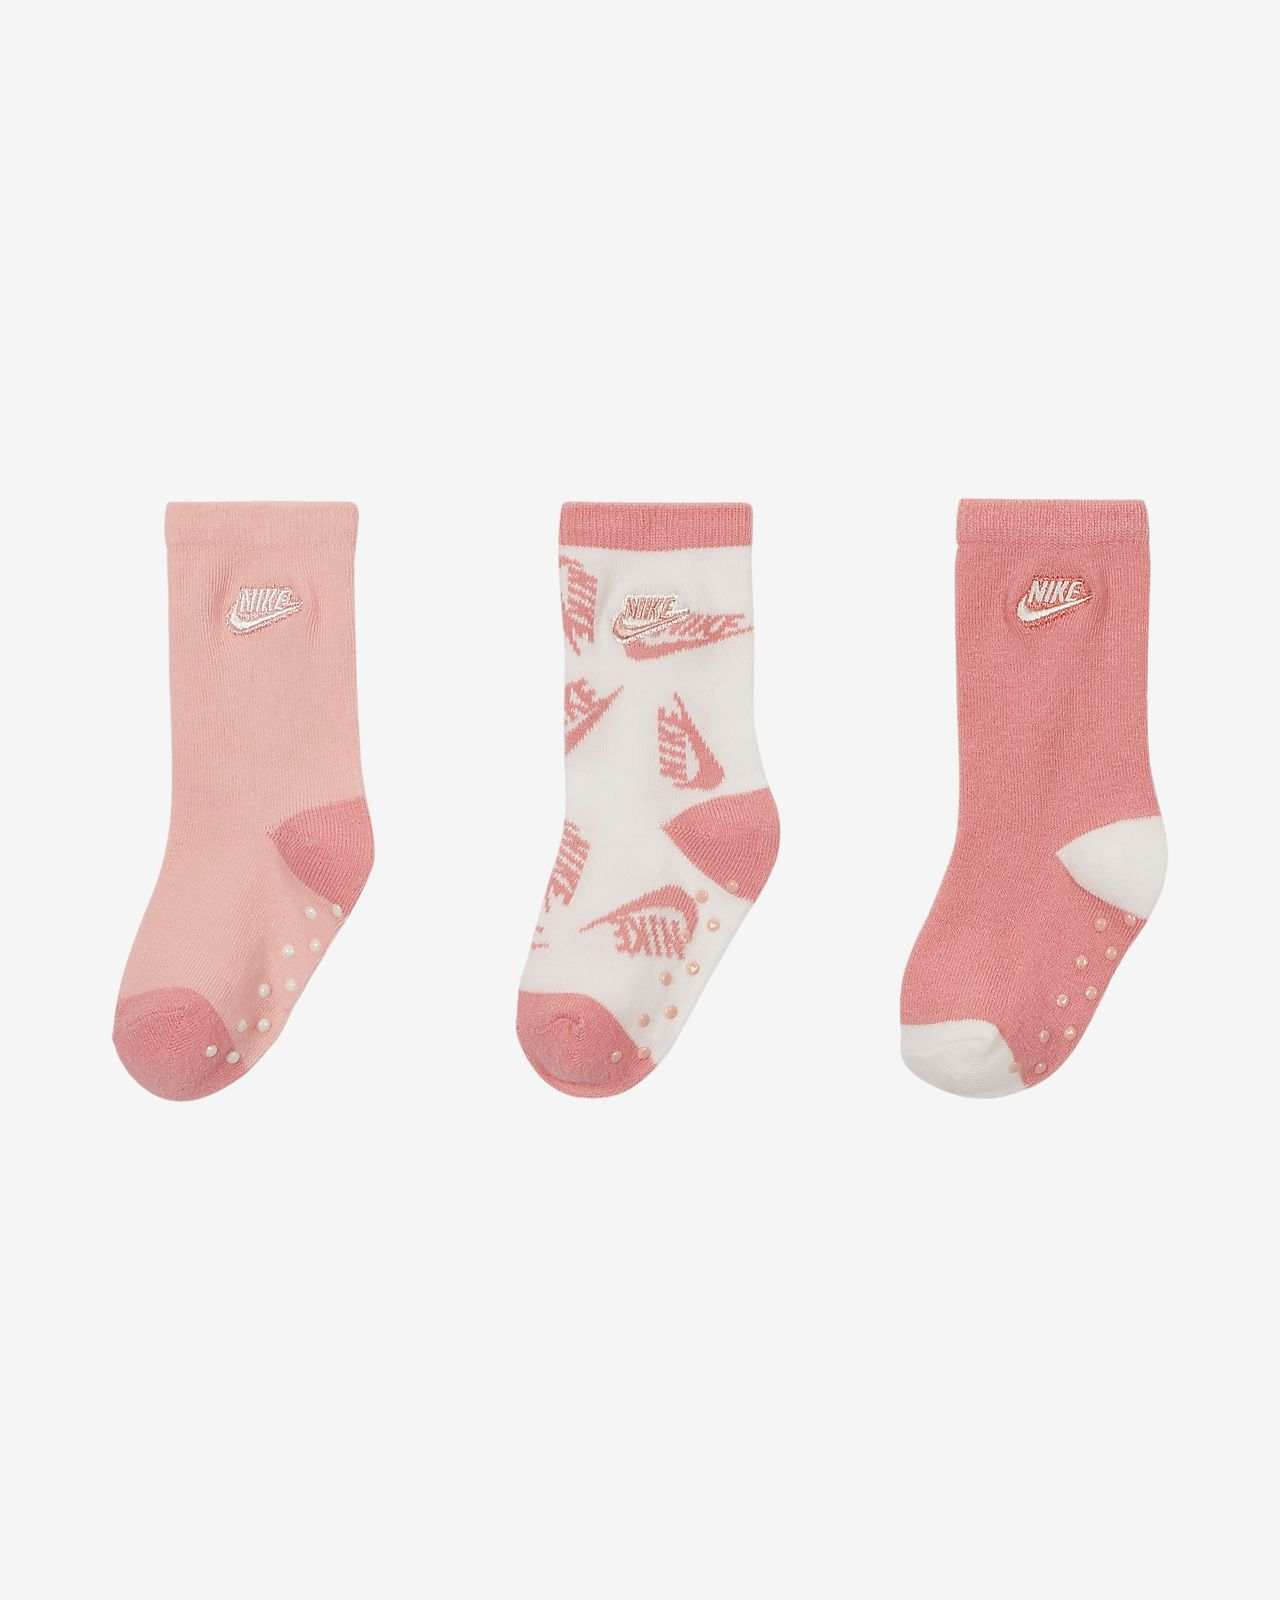 STAY ON Baby Socks 3 Pairs from Little Grippers Grey